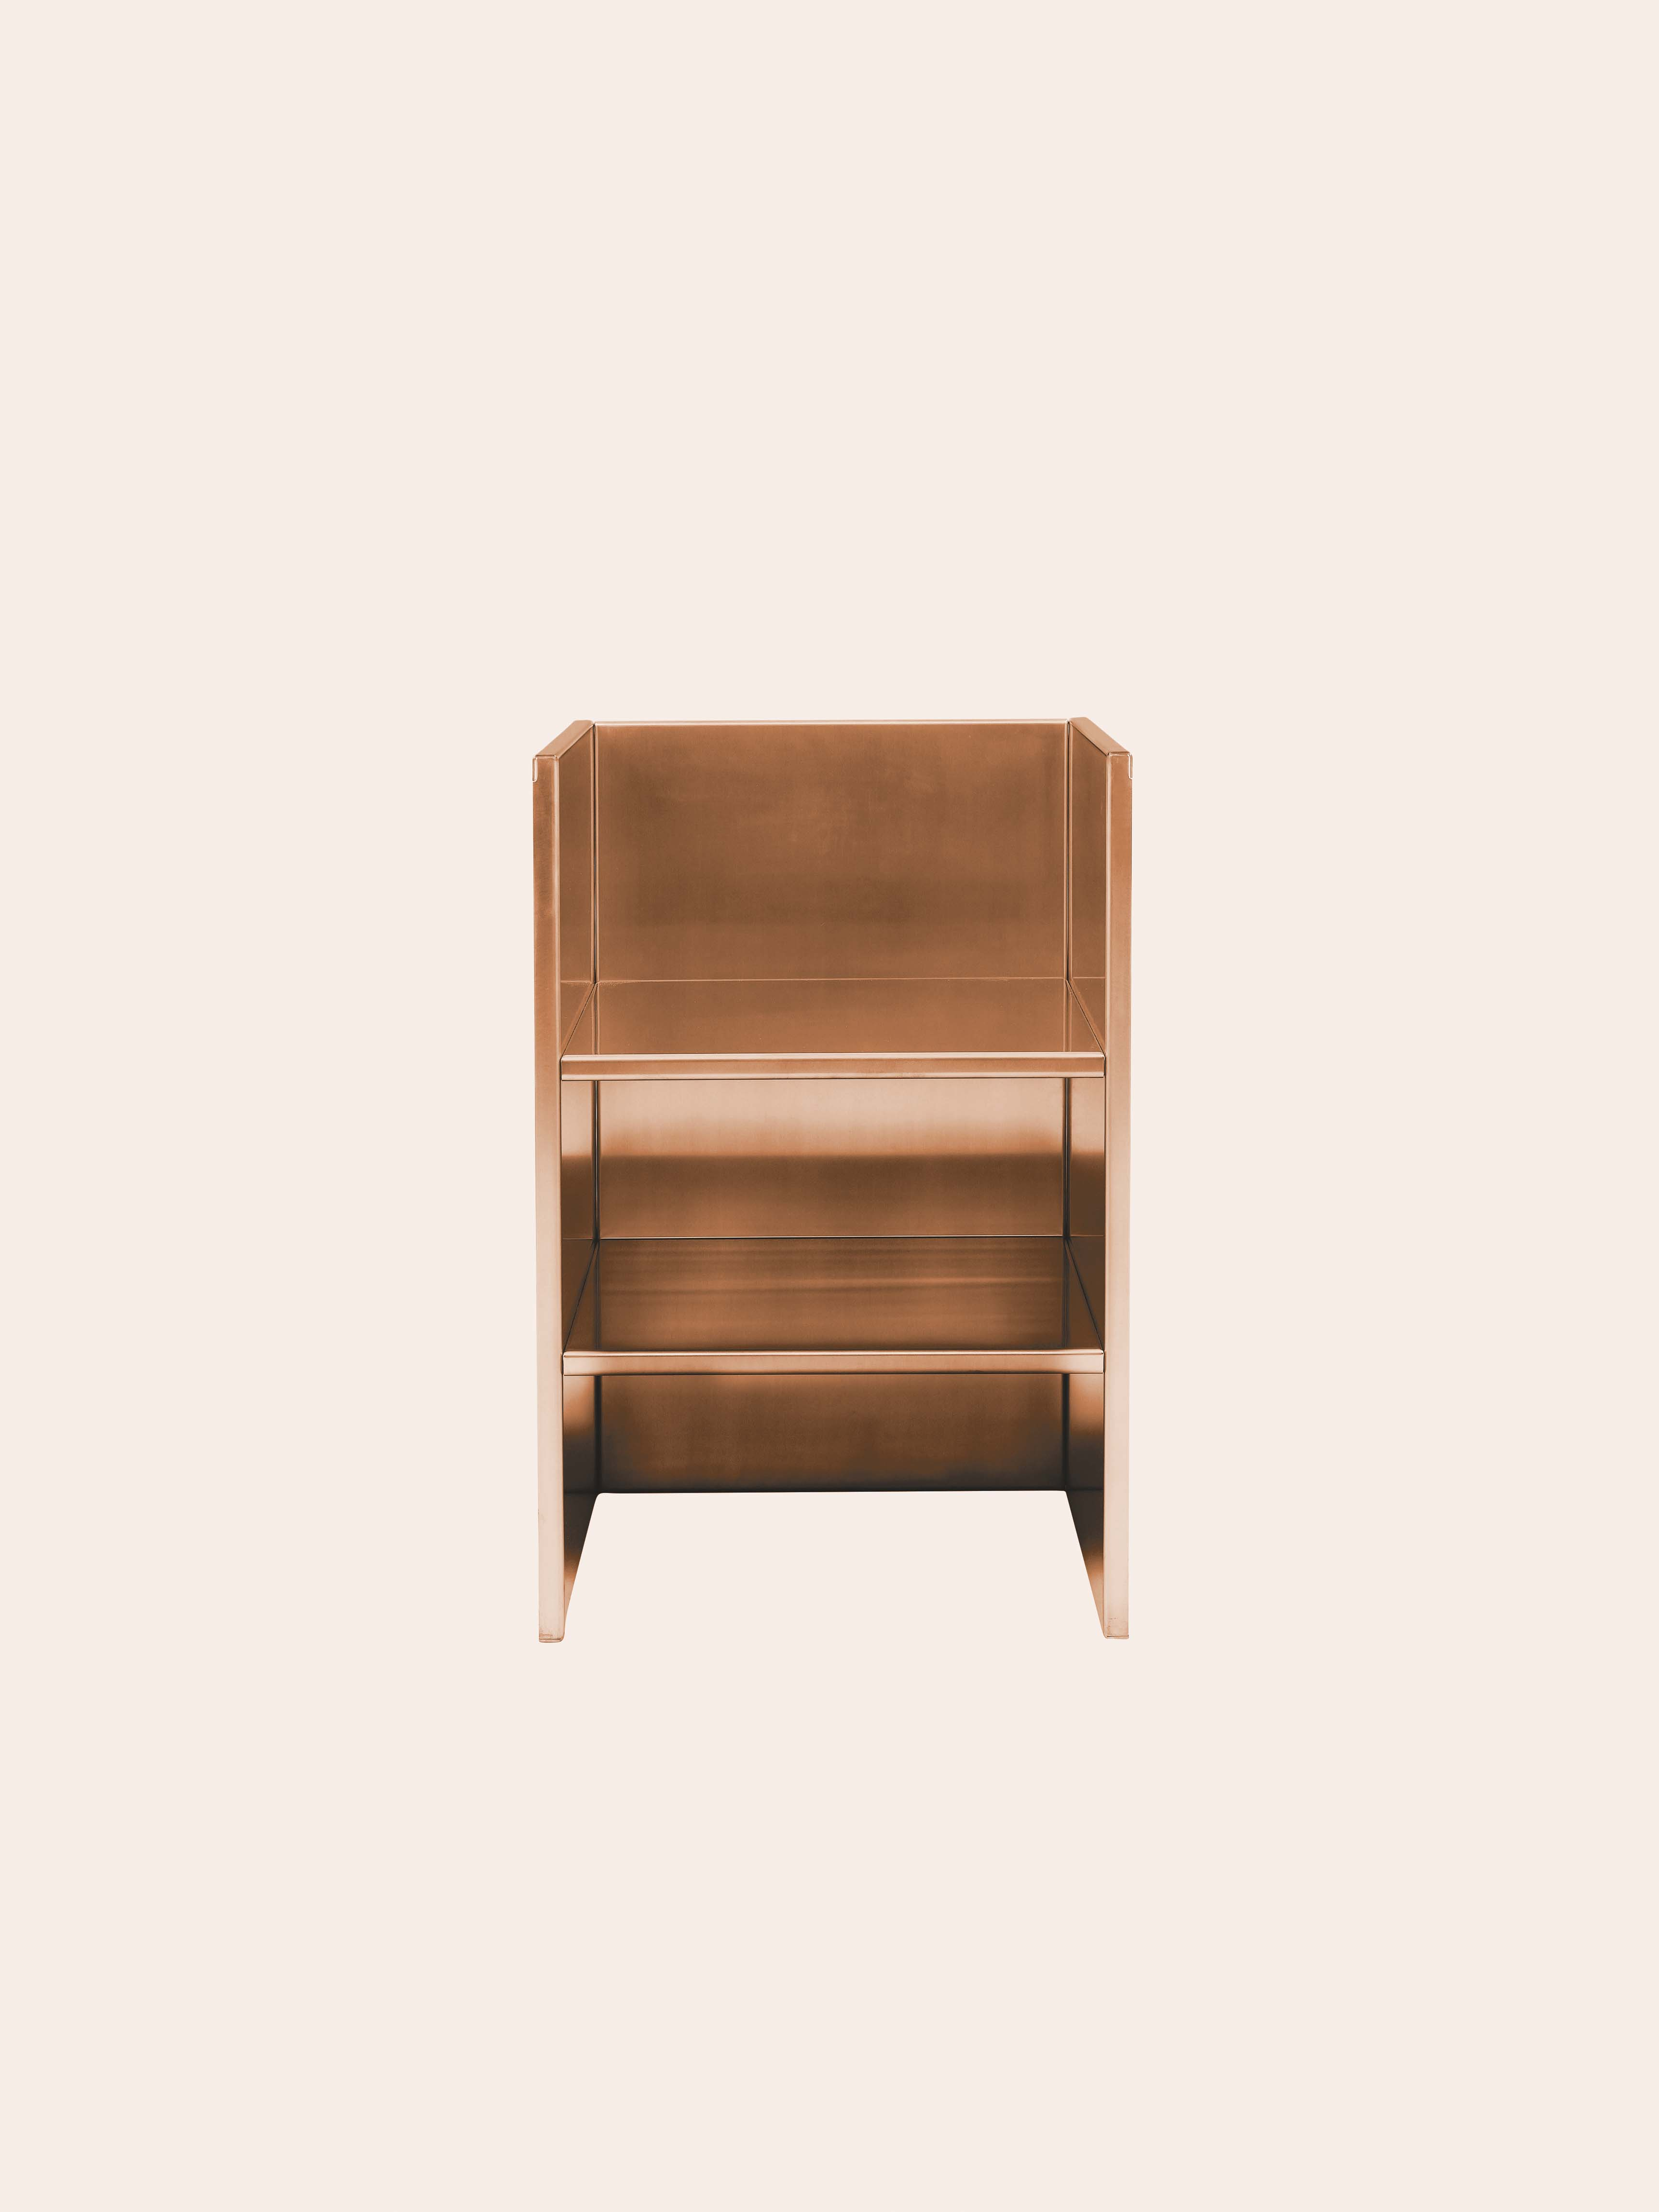 Armchair #47 by Donald Judd (Judd Furniture, courtesy of Galerie Mitterand)